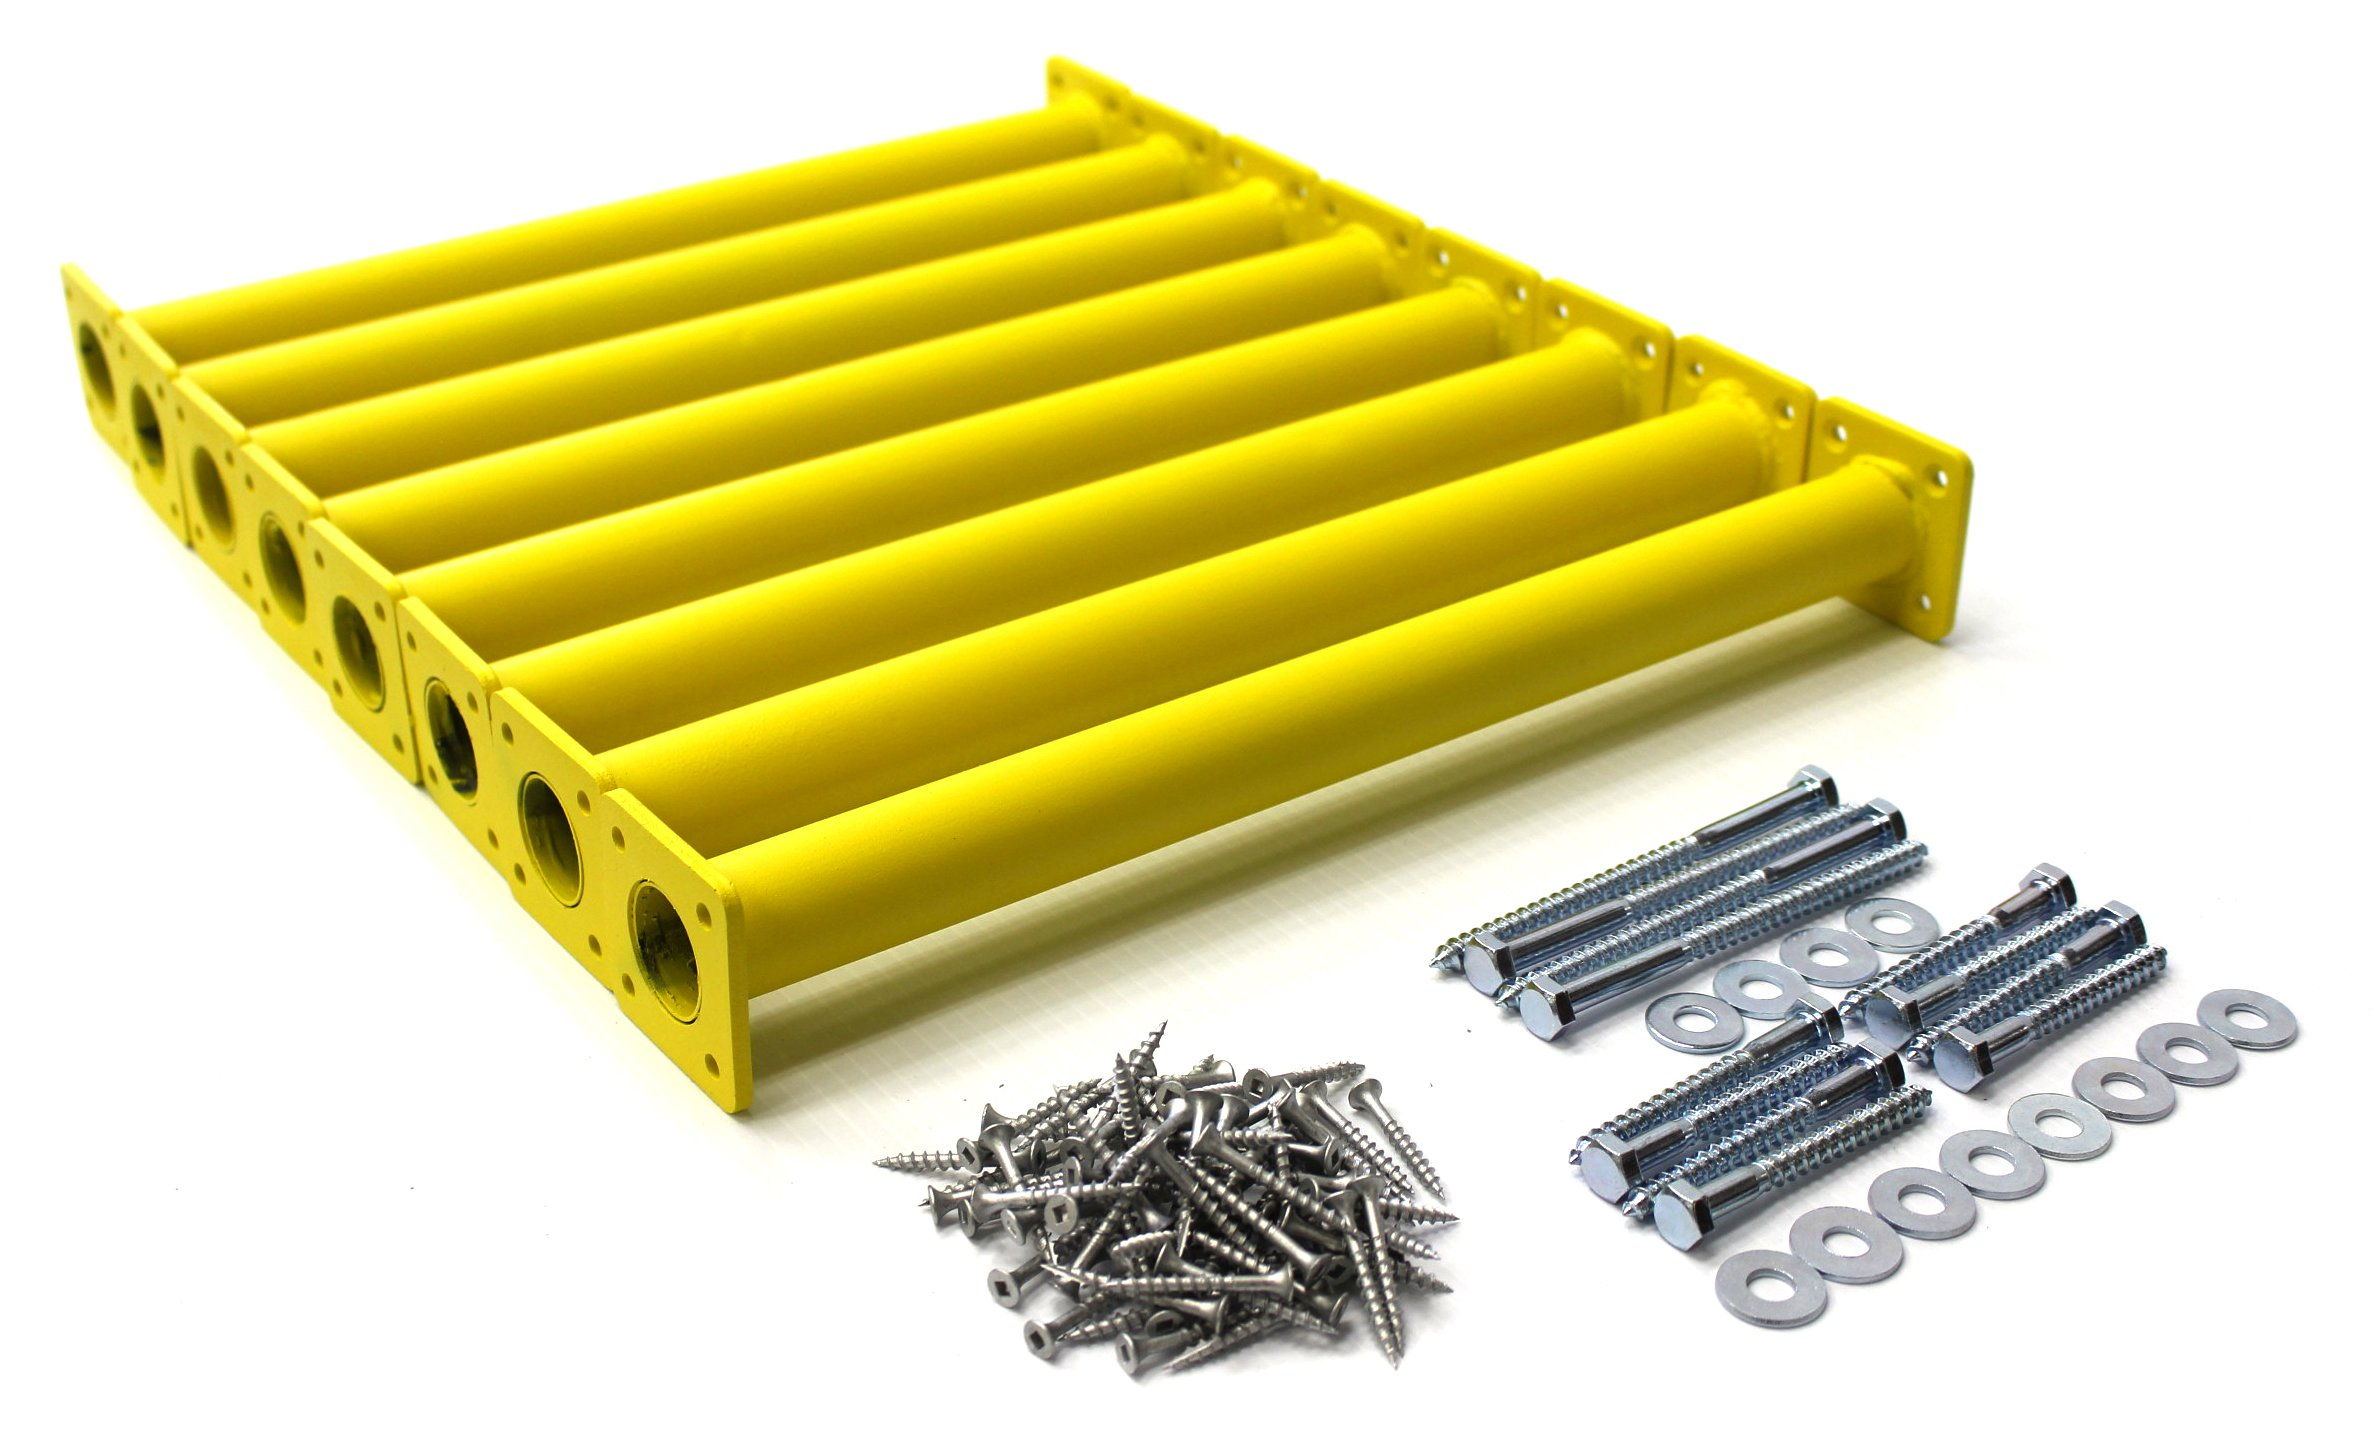 Eastern Jungle Gym Steel 15-1/8'' Monkey Bars Ladder Rungs Hardware Kit Complete with Mounting Hardware and Instructions